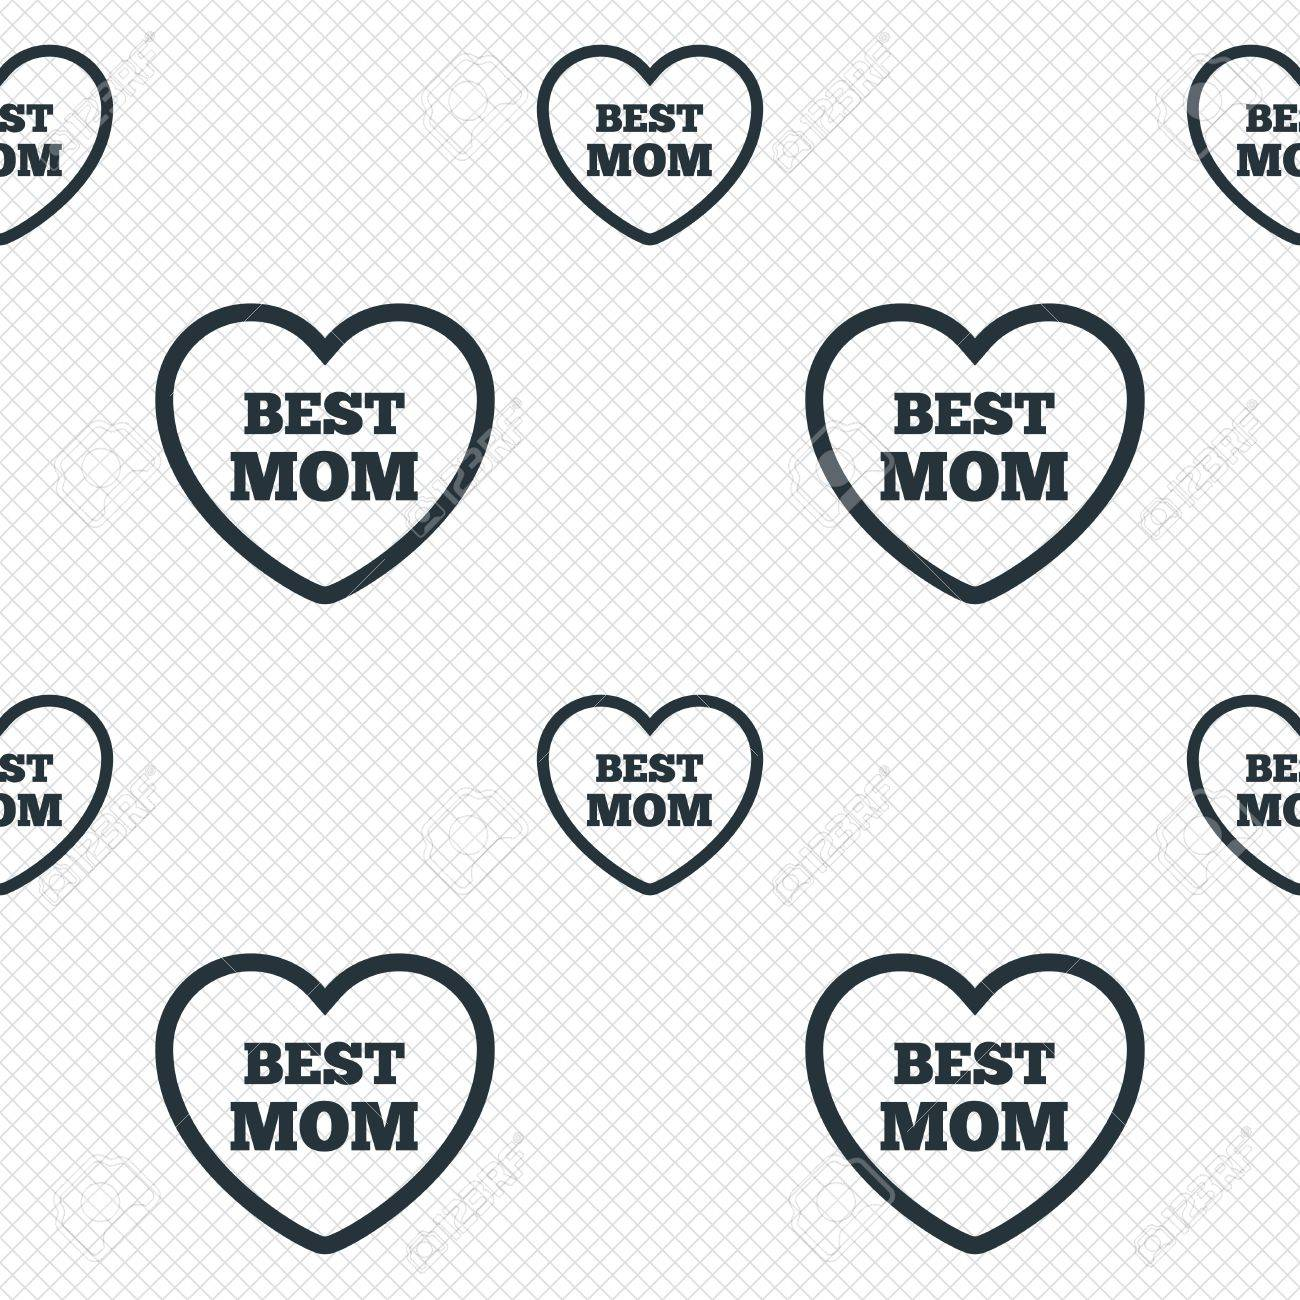 Best mom sign icon Heart love symbol Seamless grid lines texture Cells repeating